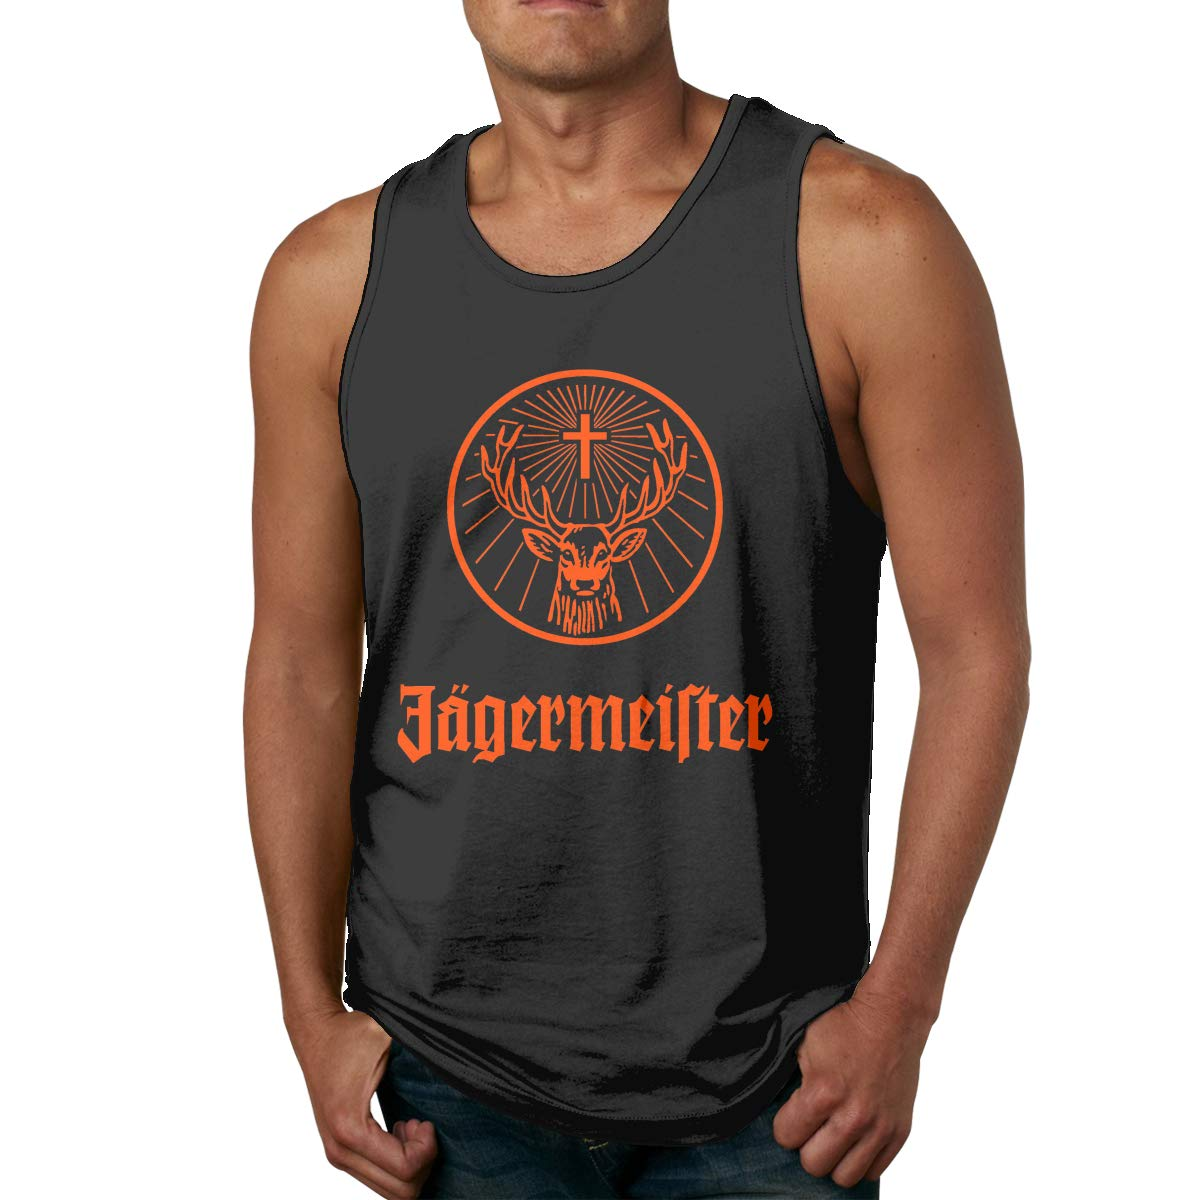 Heather Jagermeister Logo Mens Big /& Tall Shrink-Less Lightweight Sleeveless Muscle T-Shirt